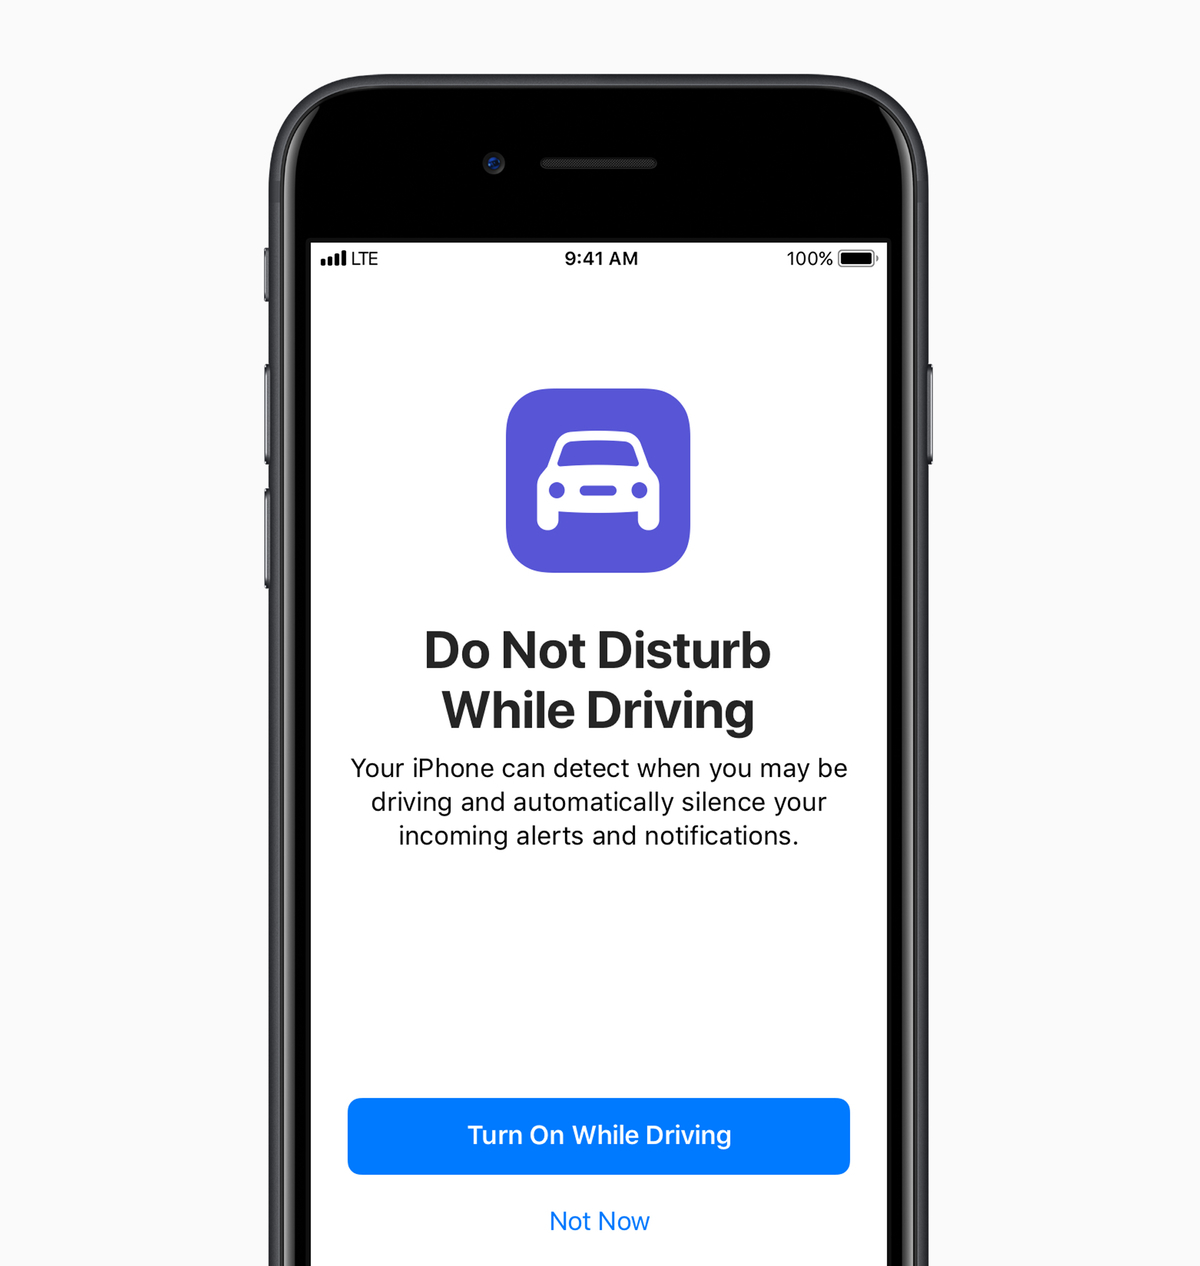 Do Not Disturb While Driving iPhone IOS 11